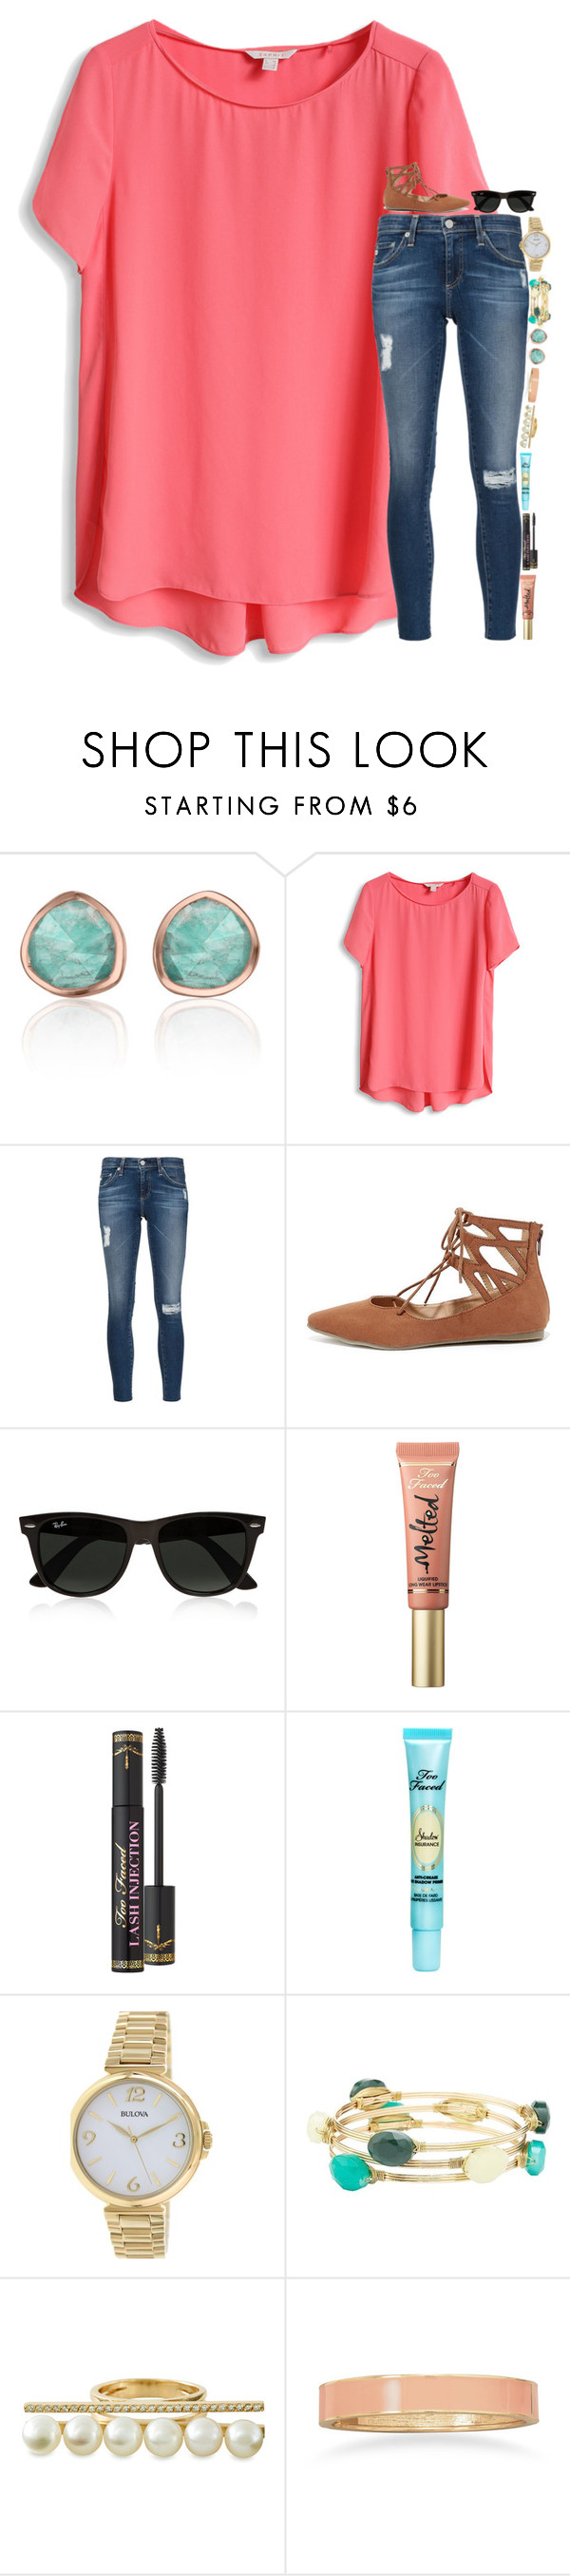 """""""Nachosssss """" by simply-lilyy ❤ liked on Polyvore featuring Monica Vinader, AG Adriano Goldschmied, Liliana, Ray-Ban, Too Faced Cosmetics, Bulova, Charlotte Russe, Gold Philosophy and BillyTheTree"""